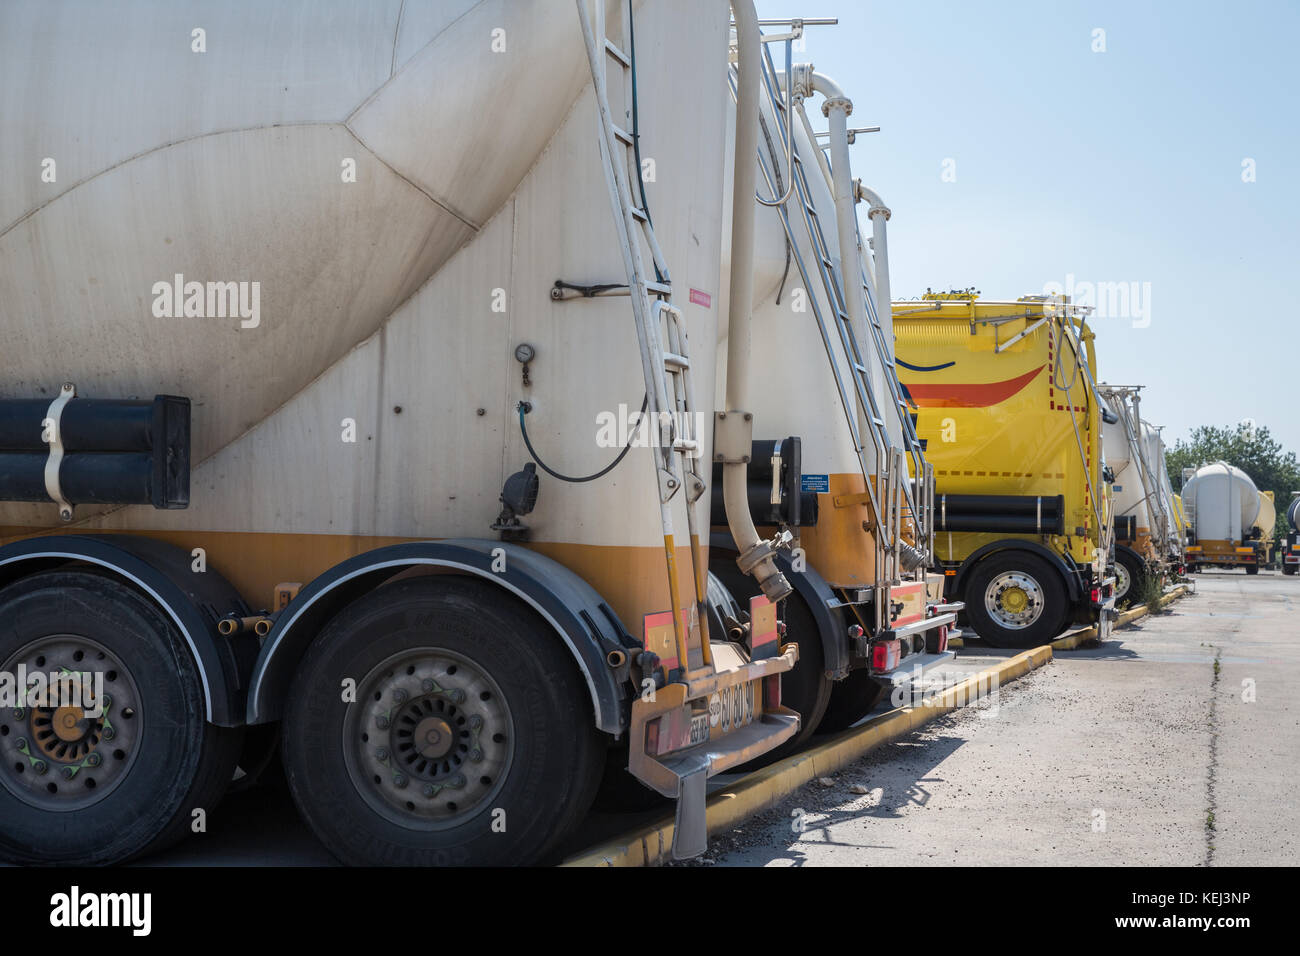 Cement Truck Stock Photos Amp Cement Truck Stock Images Alamy